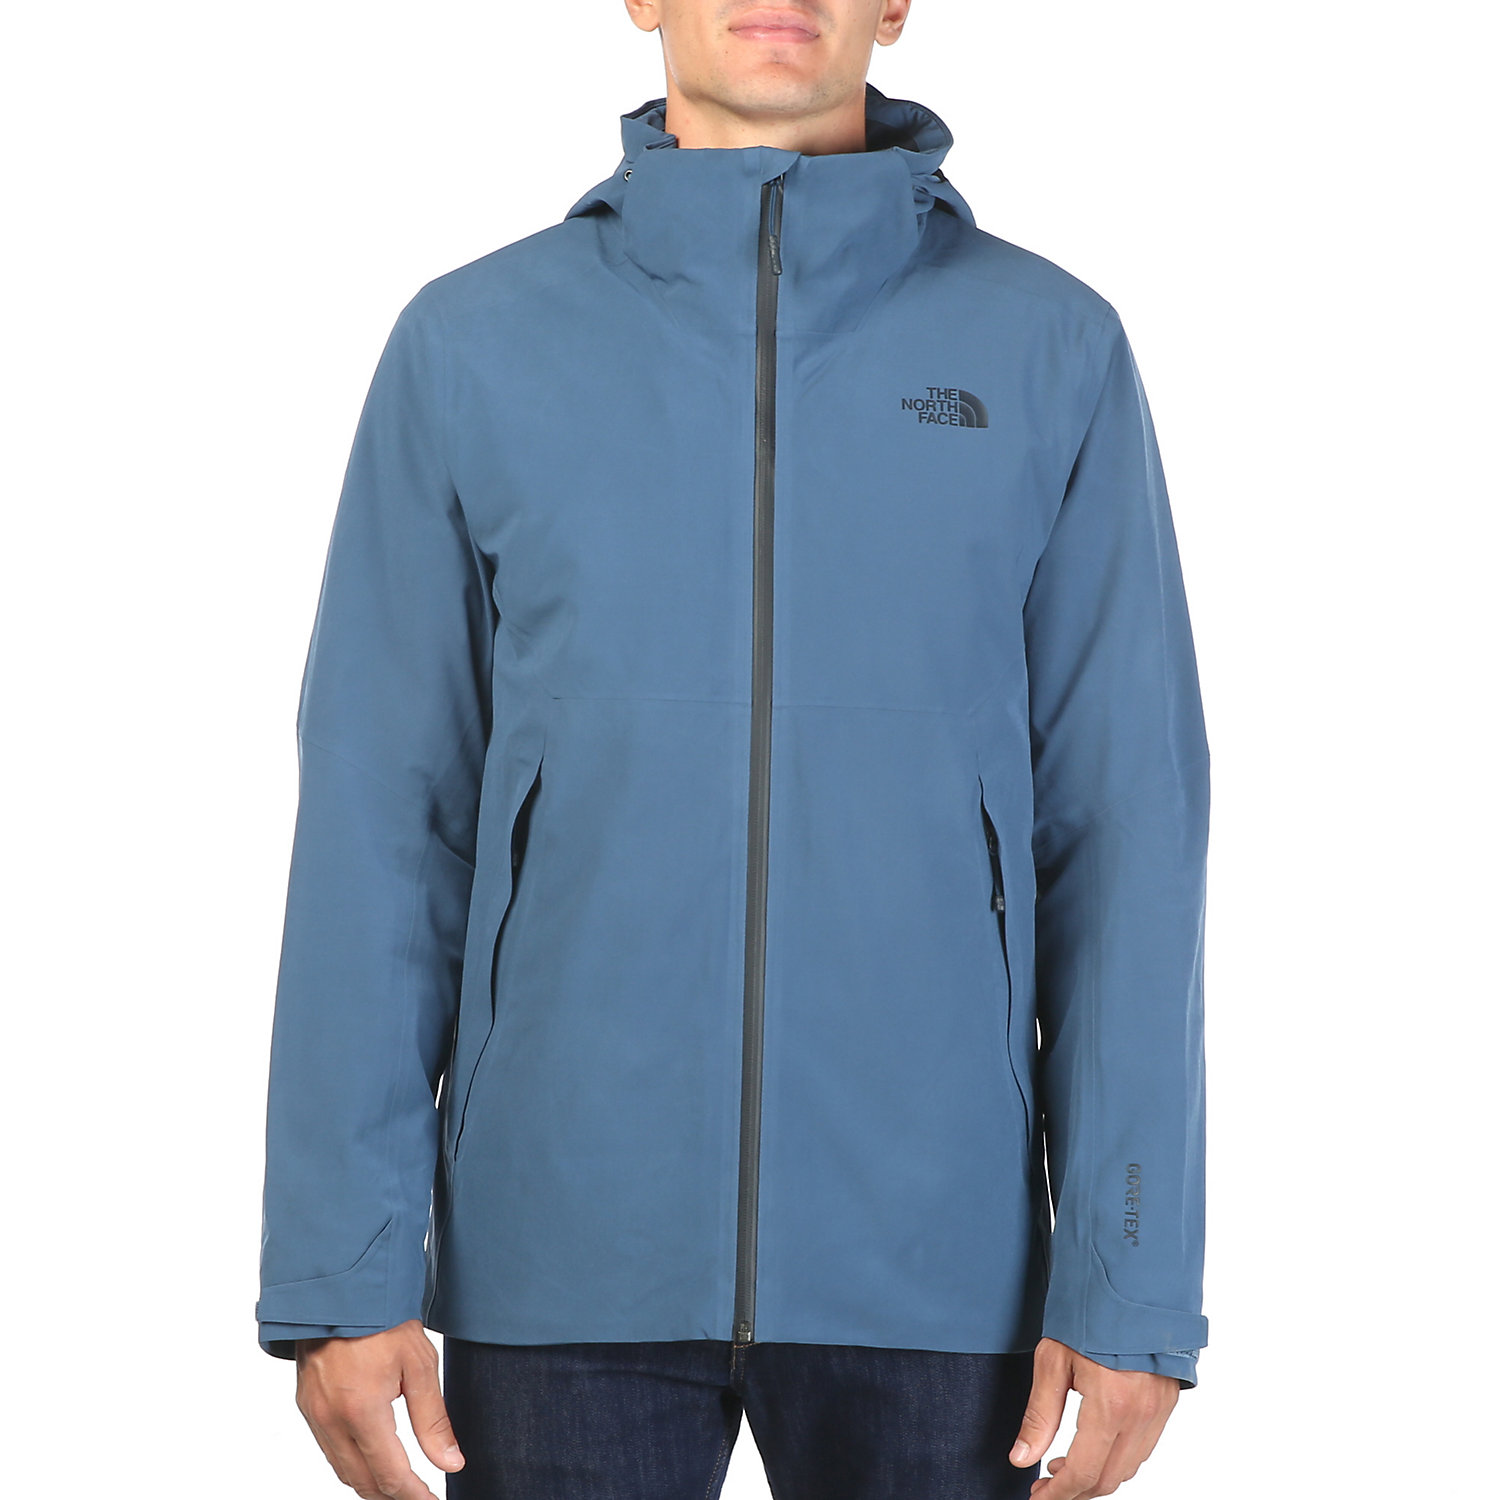 The North Face Men s Apex Flex GTX Thermal Jacket - Moosejaw 7f4587a61